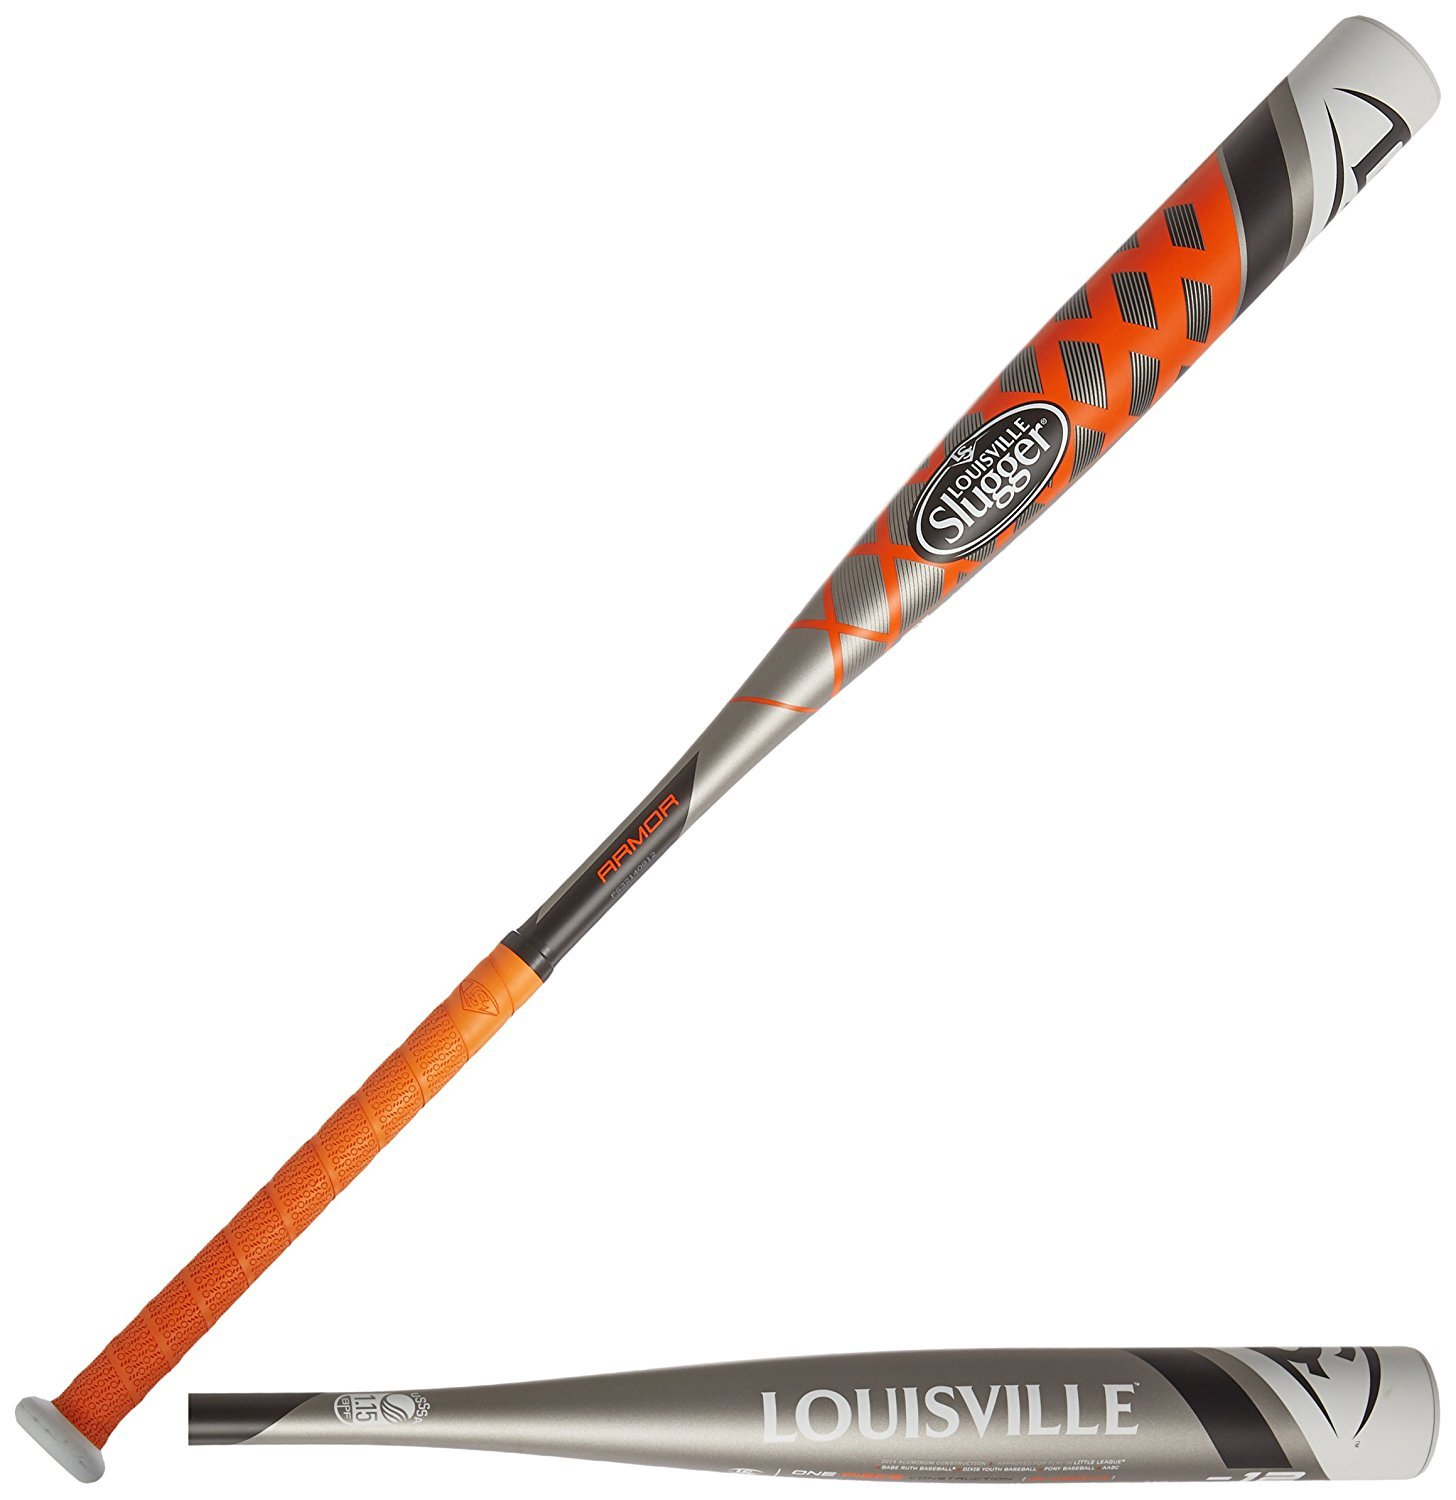 Louisville Slugger: Armor little baseball bat